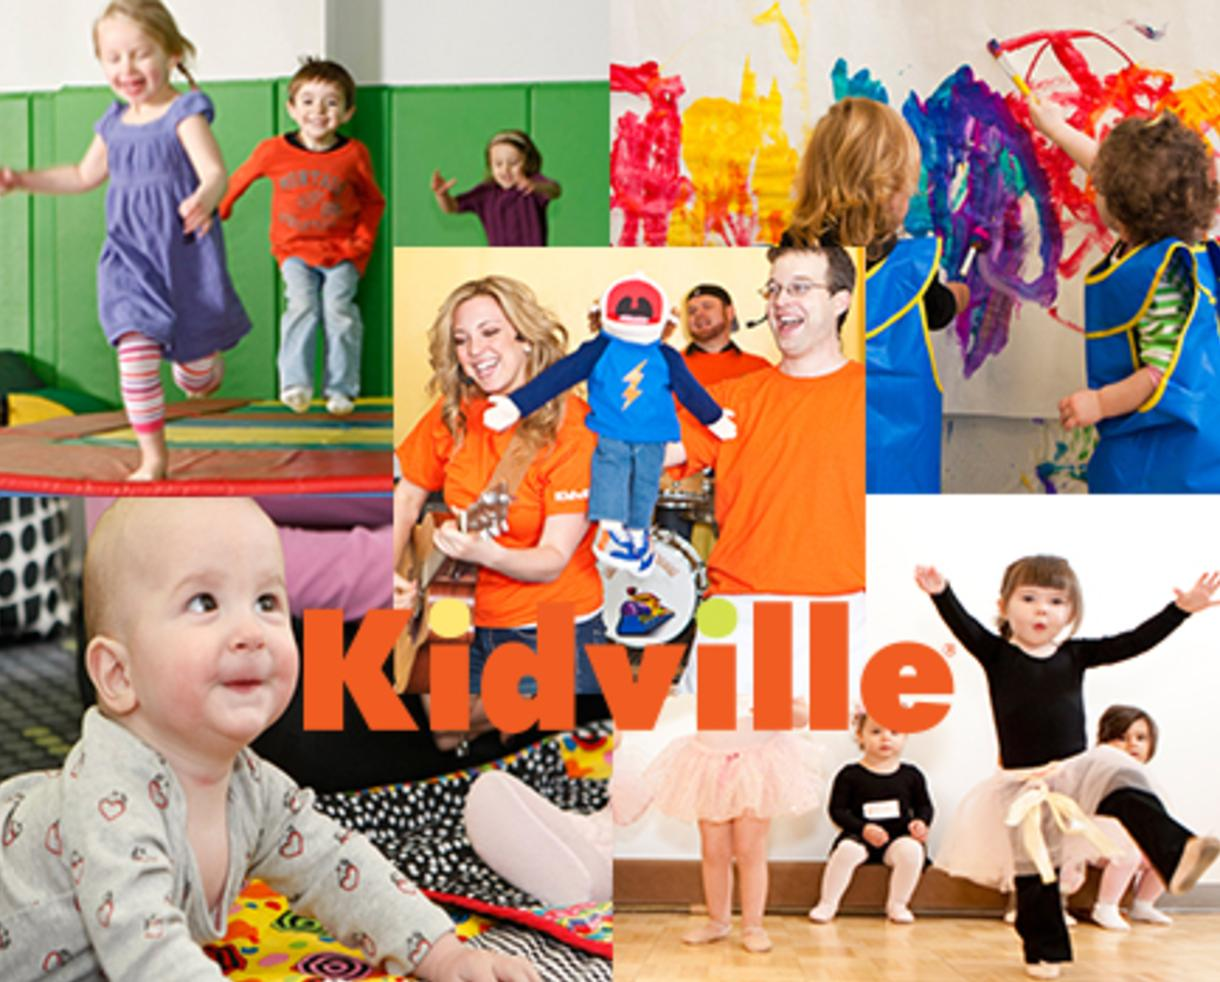 $49 for KIDVILLE Winter Sampler Package - 3 Classes and 2 Playspace Passes in Bethesda (67% Off)